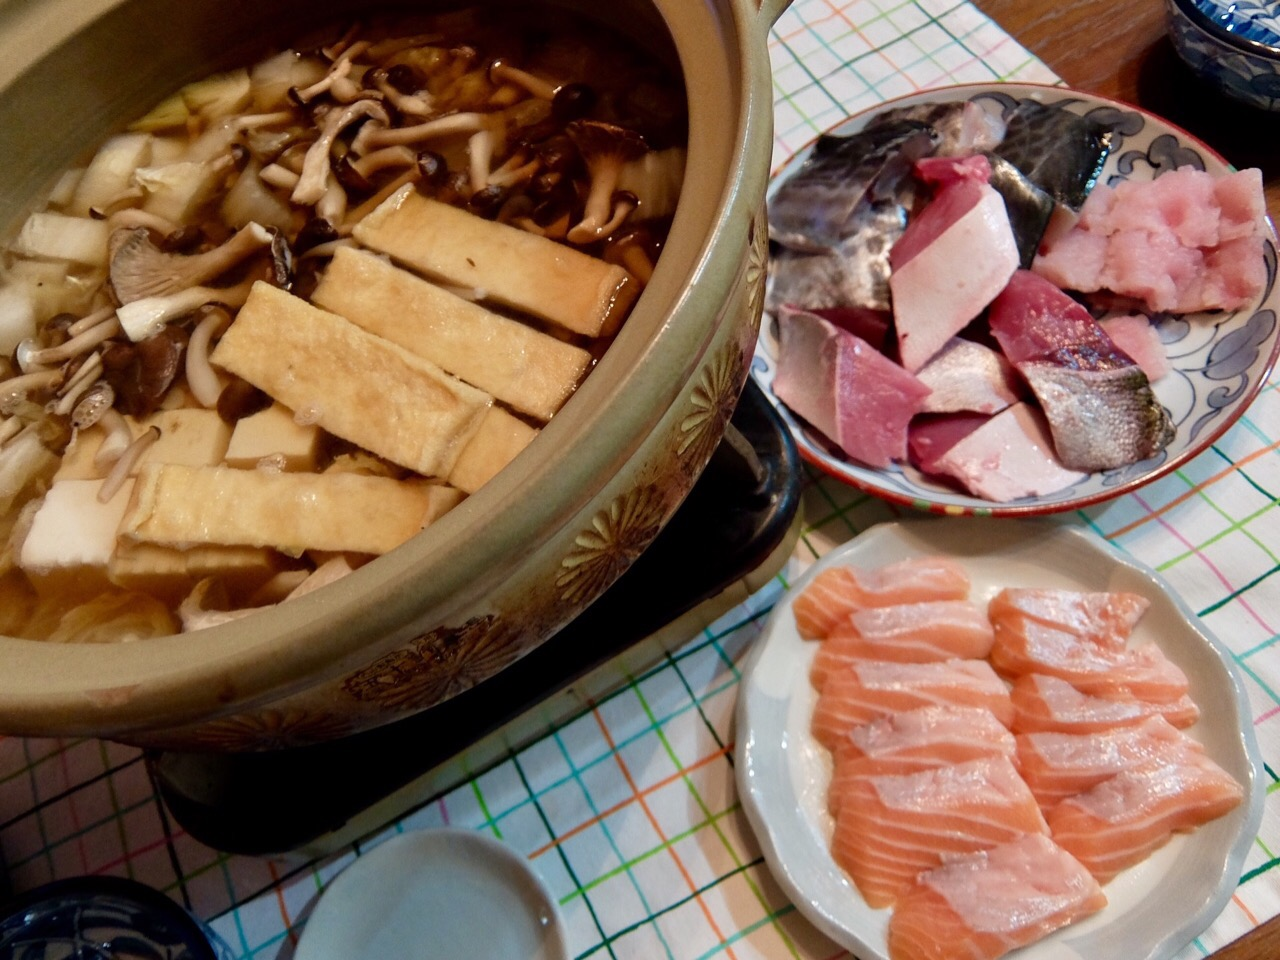 2017/08/11 #dinner with dad and mom Salomon sashimi, Yellowtail, Spanish mackerel and conger pike hot pot (サーモンの刺身、鰤・鰆・鱧のお鍋)